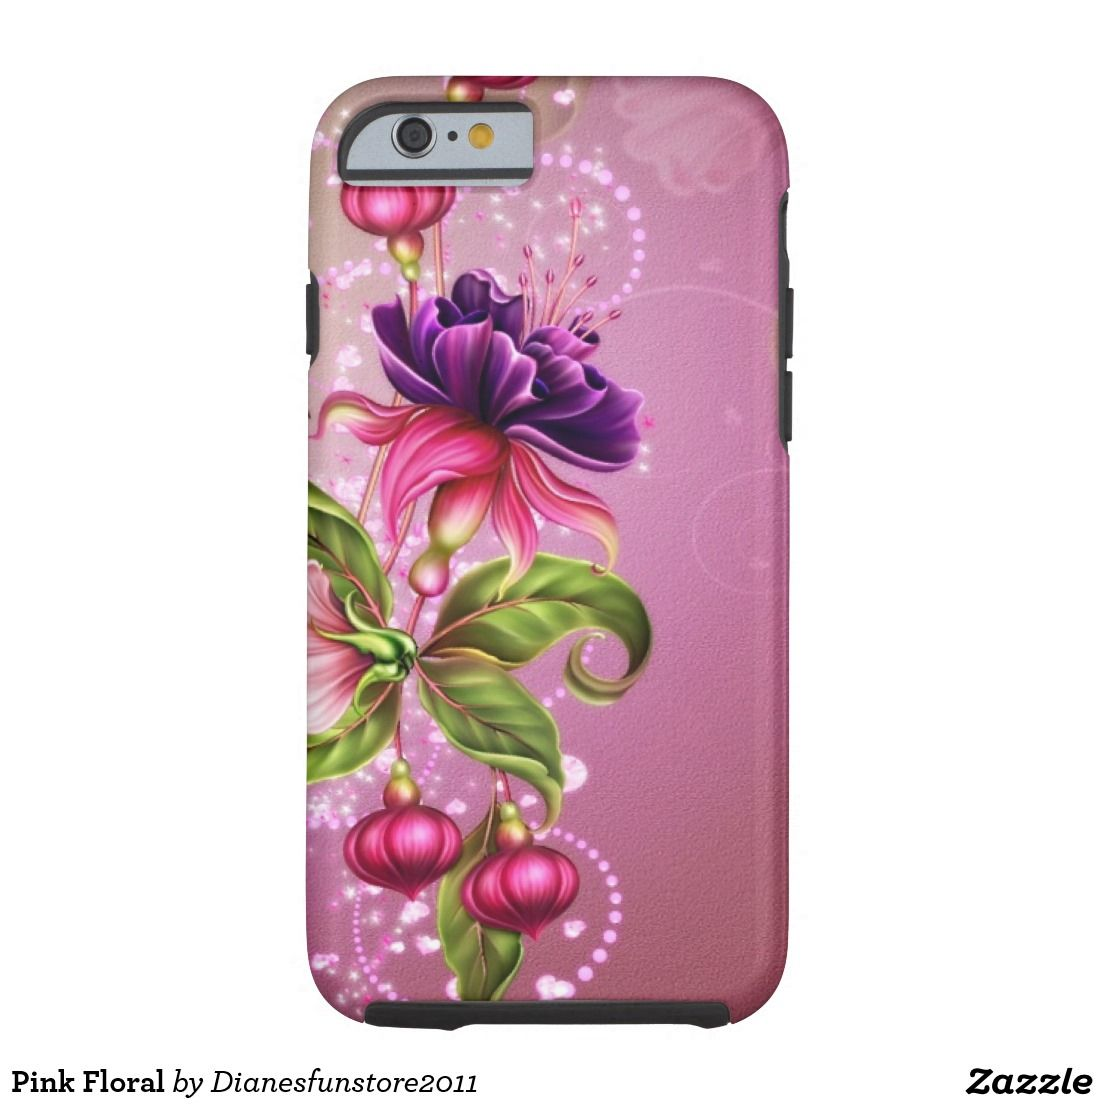 Pink Floral Tough iPhone 6 Case